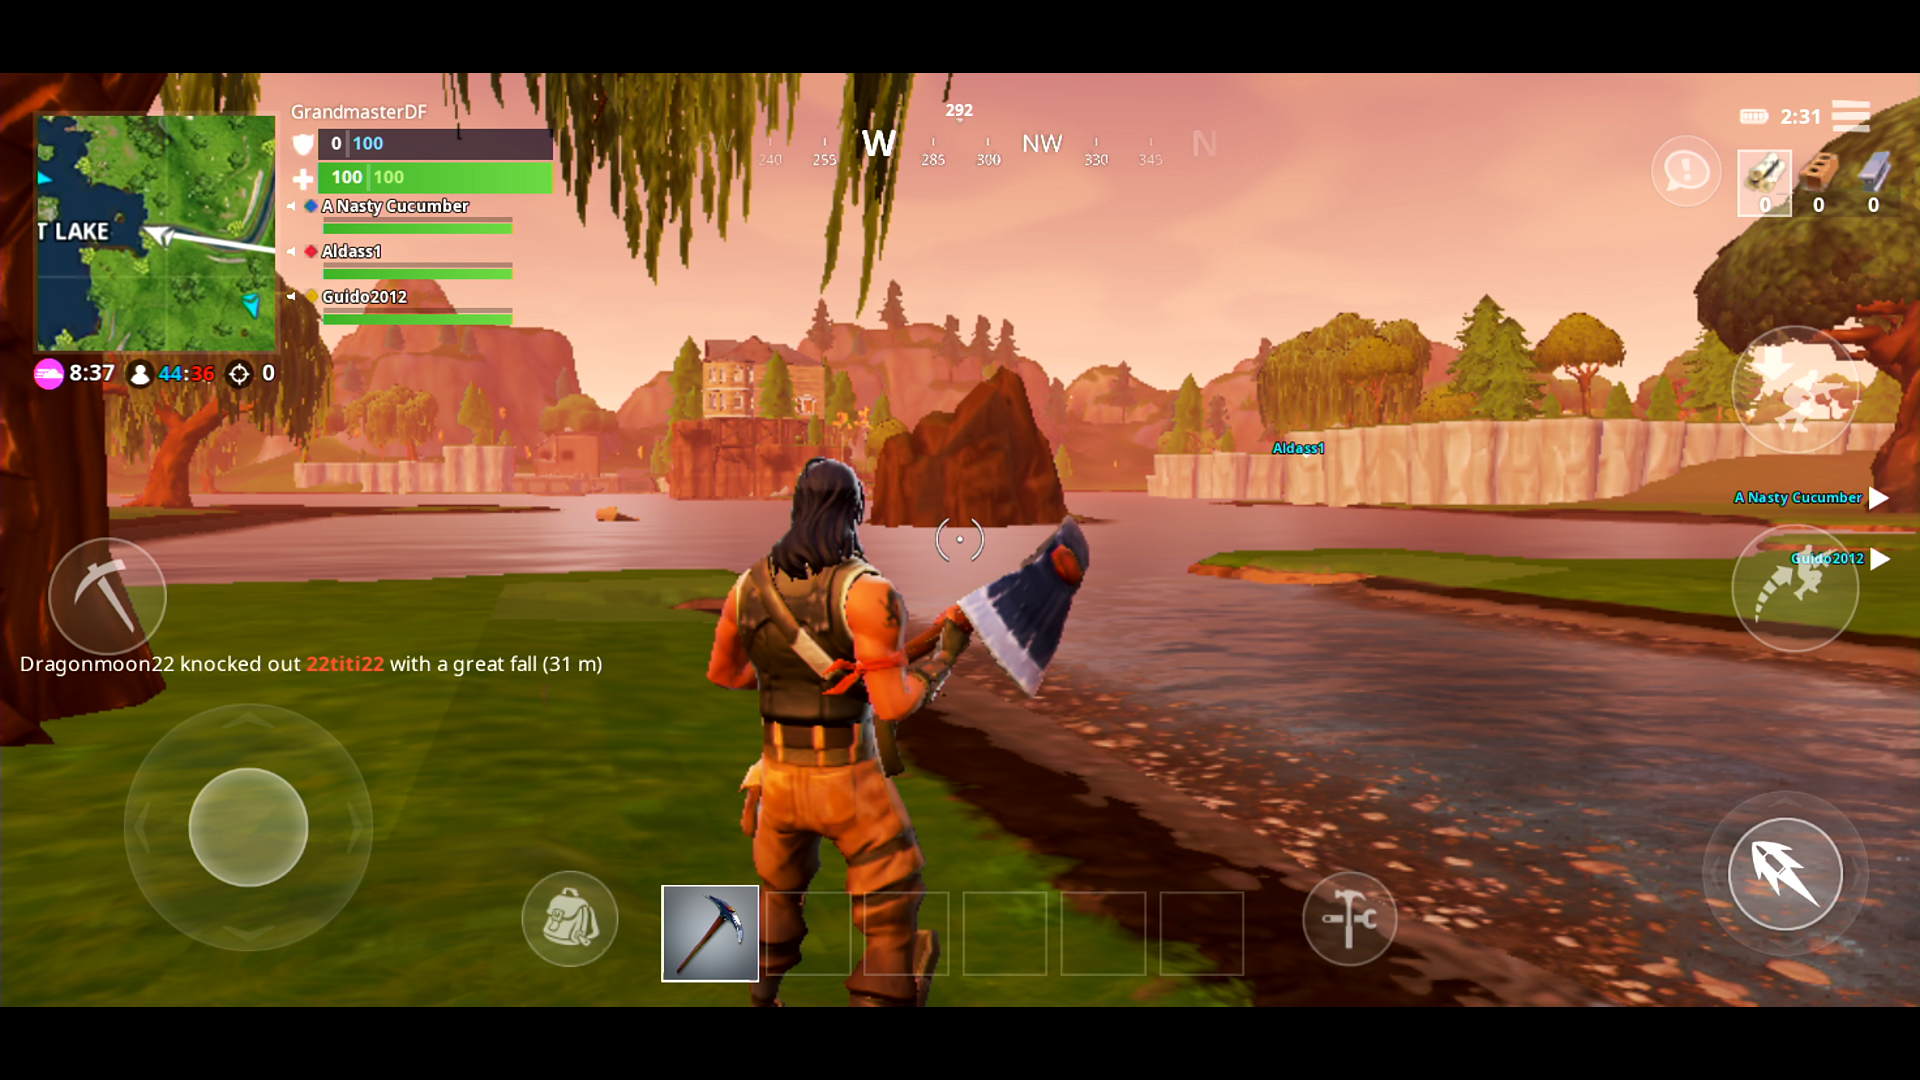 Fortnite mobile head-to-head: Android vs iOS vs Switch